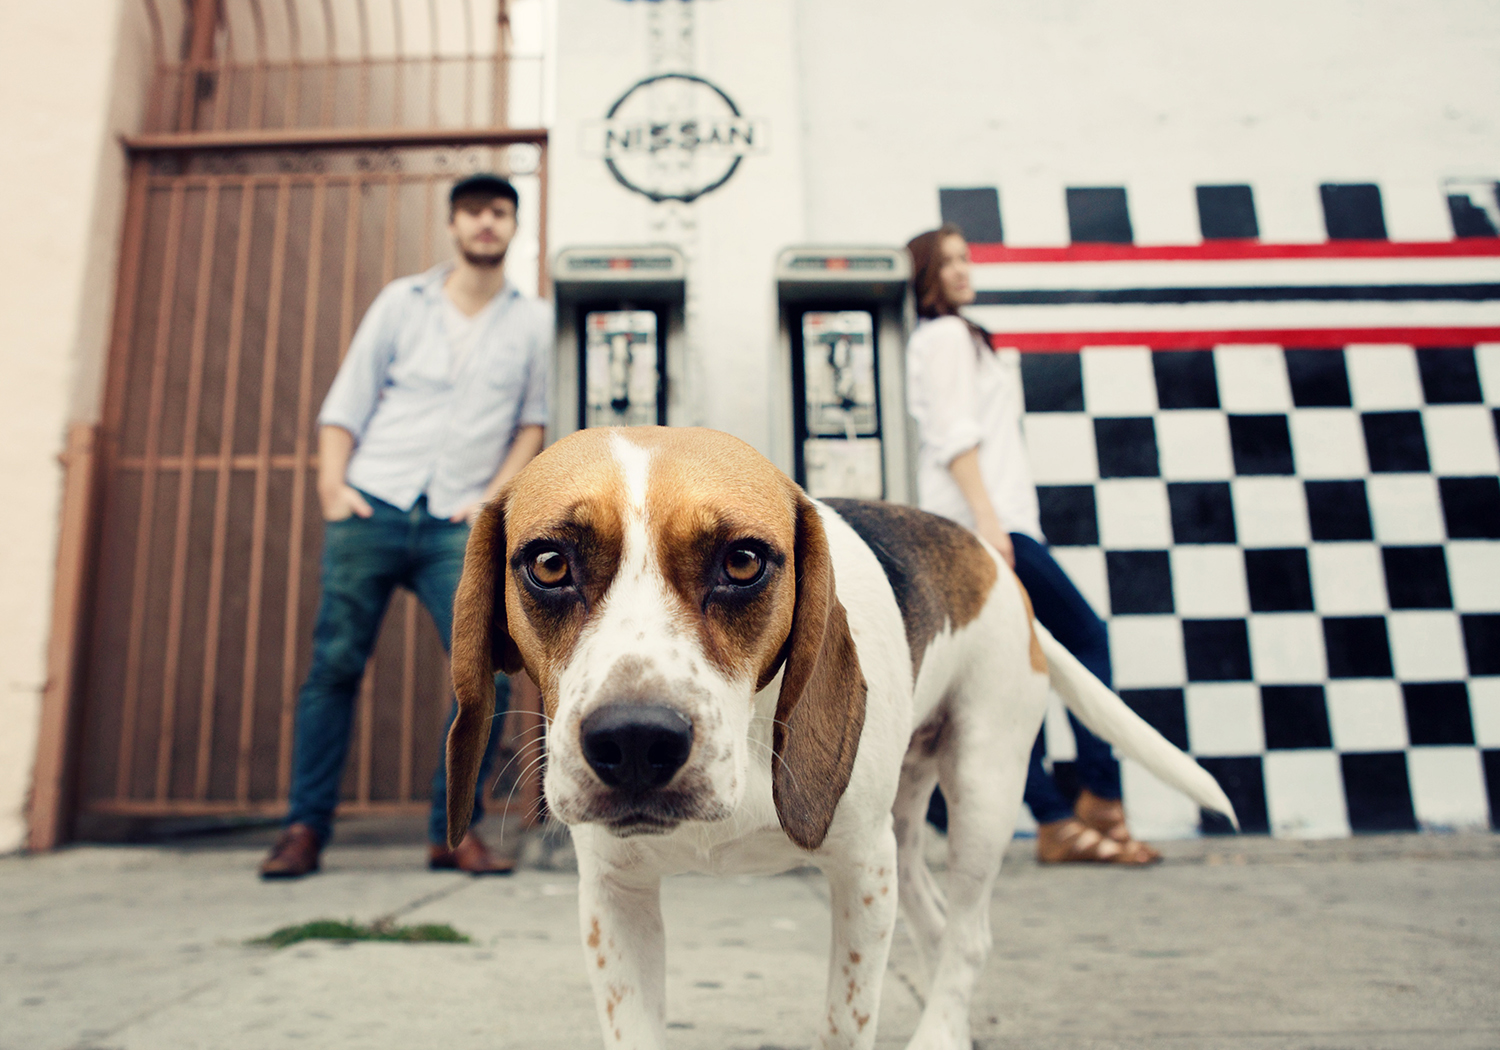 Photographing Pets and People on Location - Lighting, posing, composition and backgrounds.